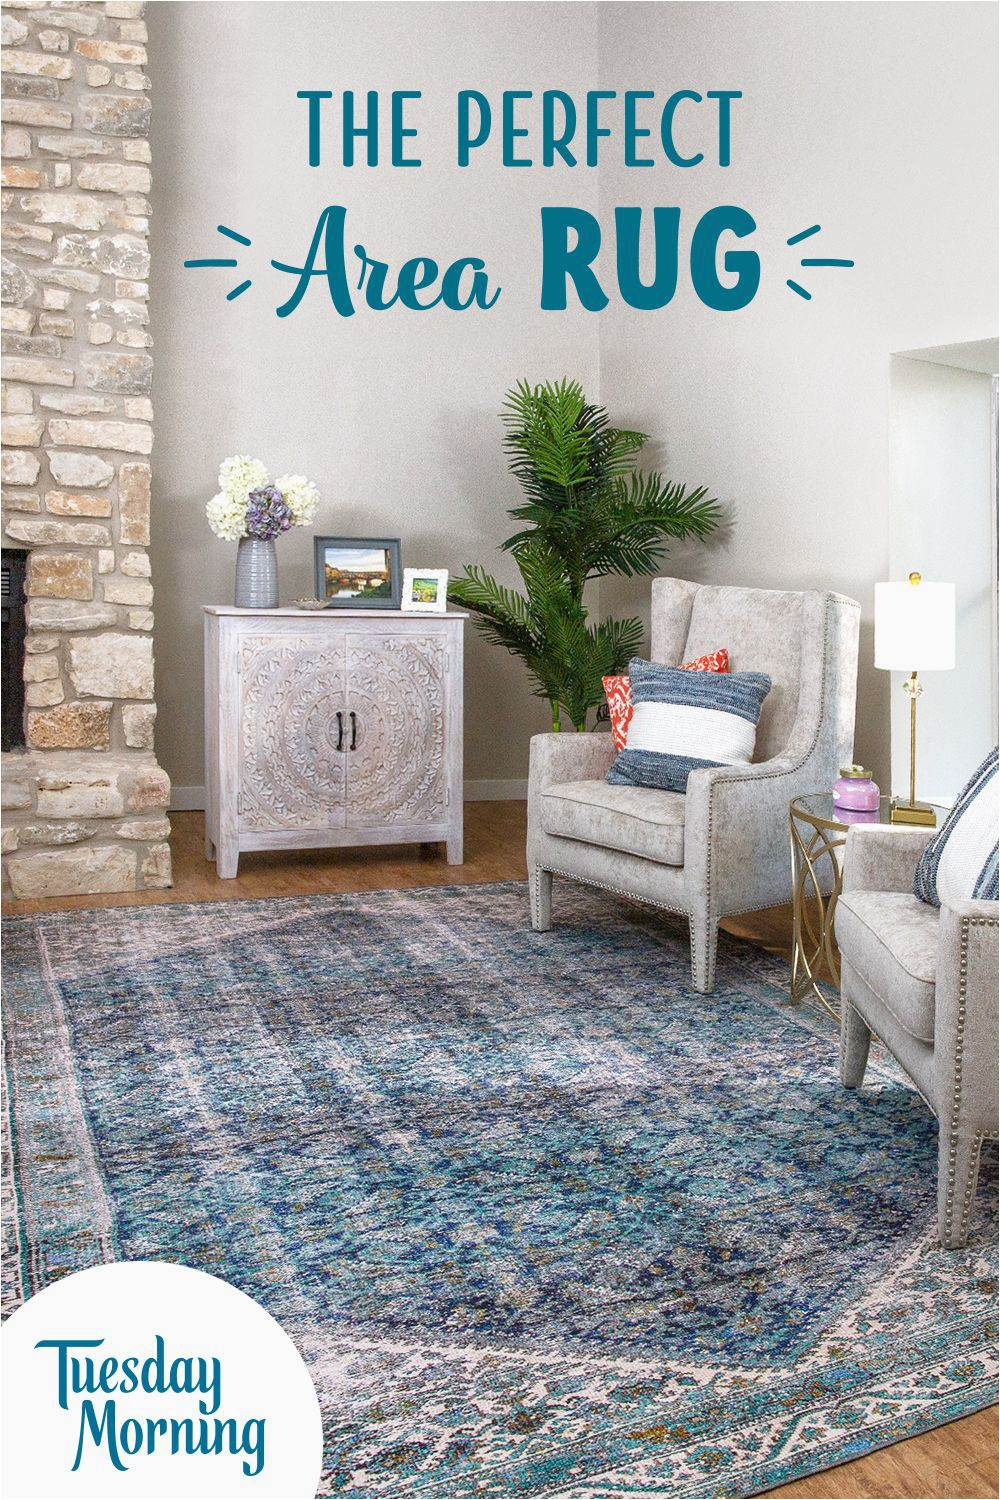 Tuesday Morning Bathroom Rugs the Perfect area Rug Tuesday Morning